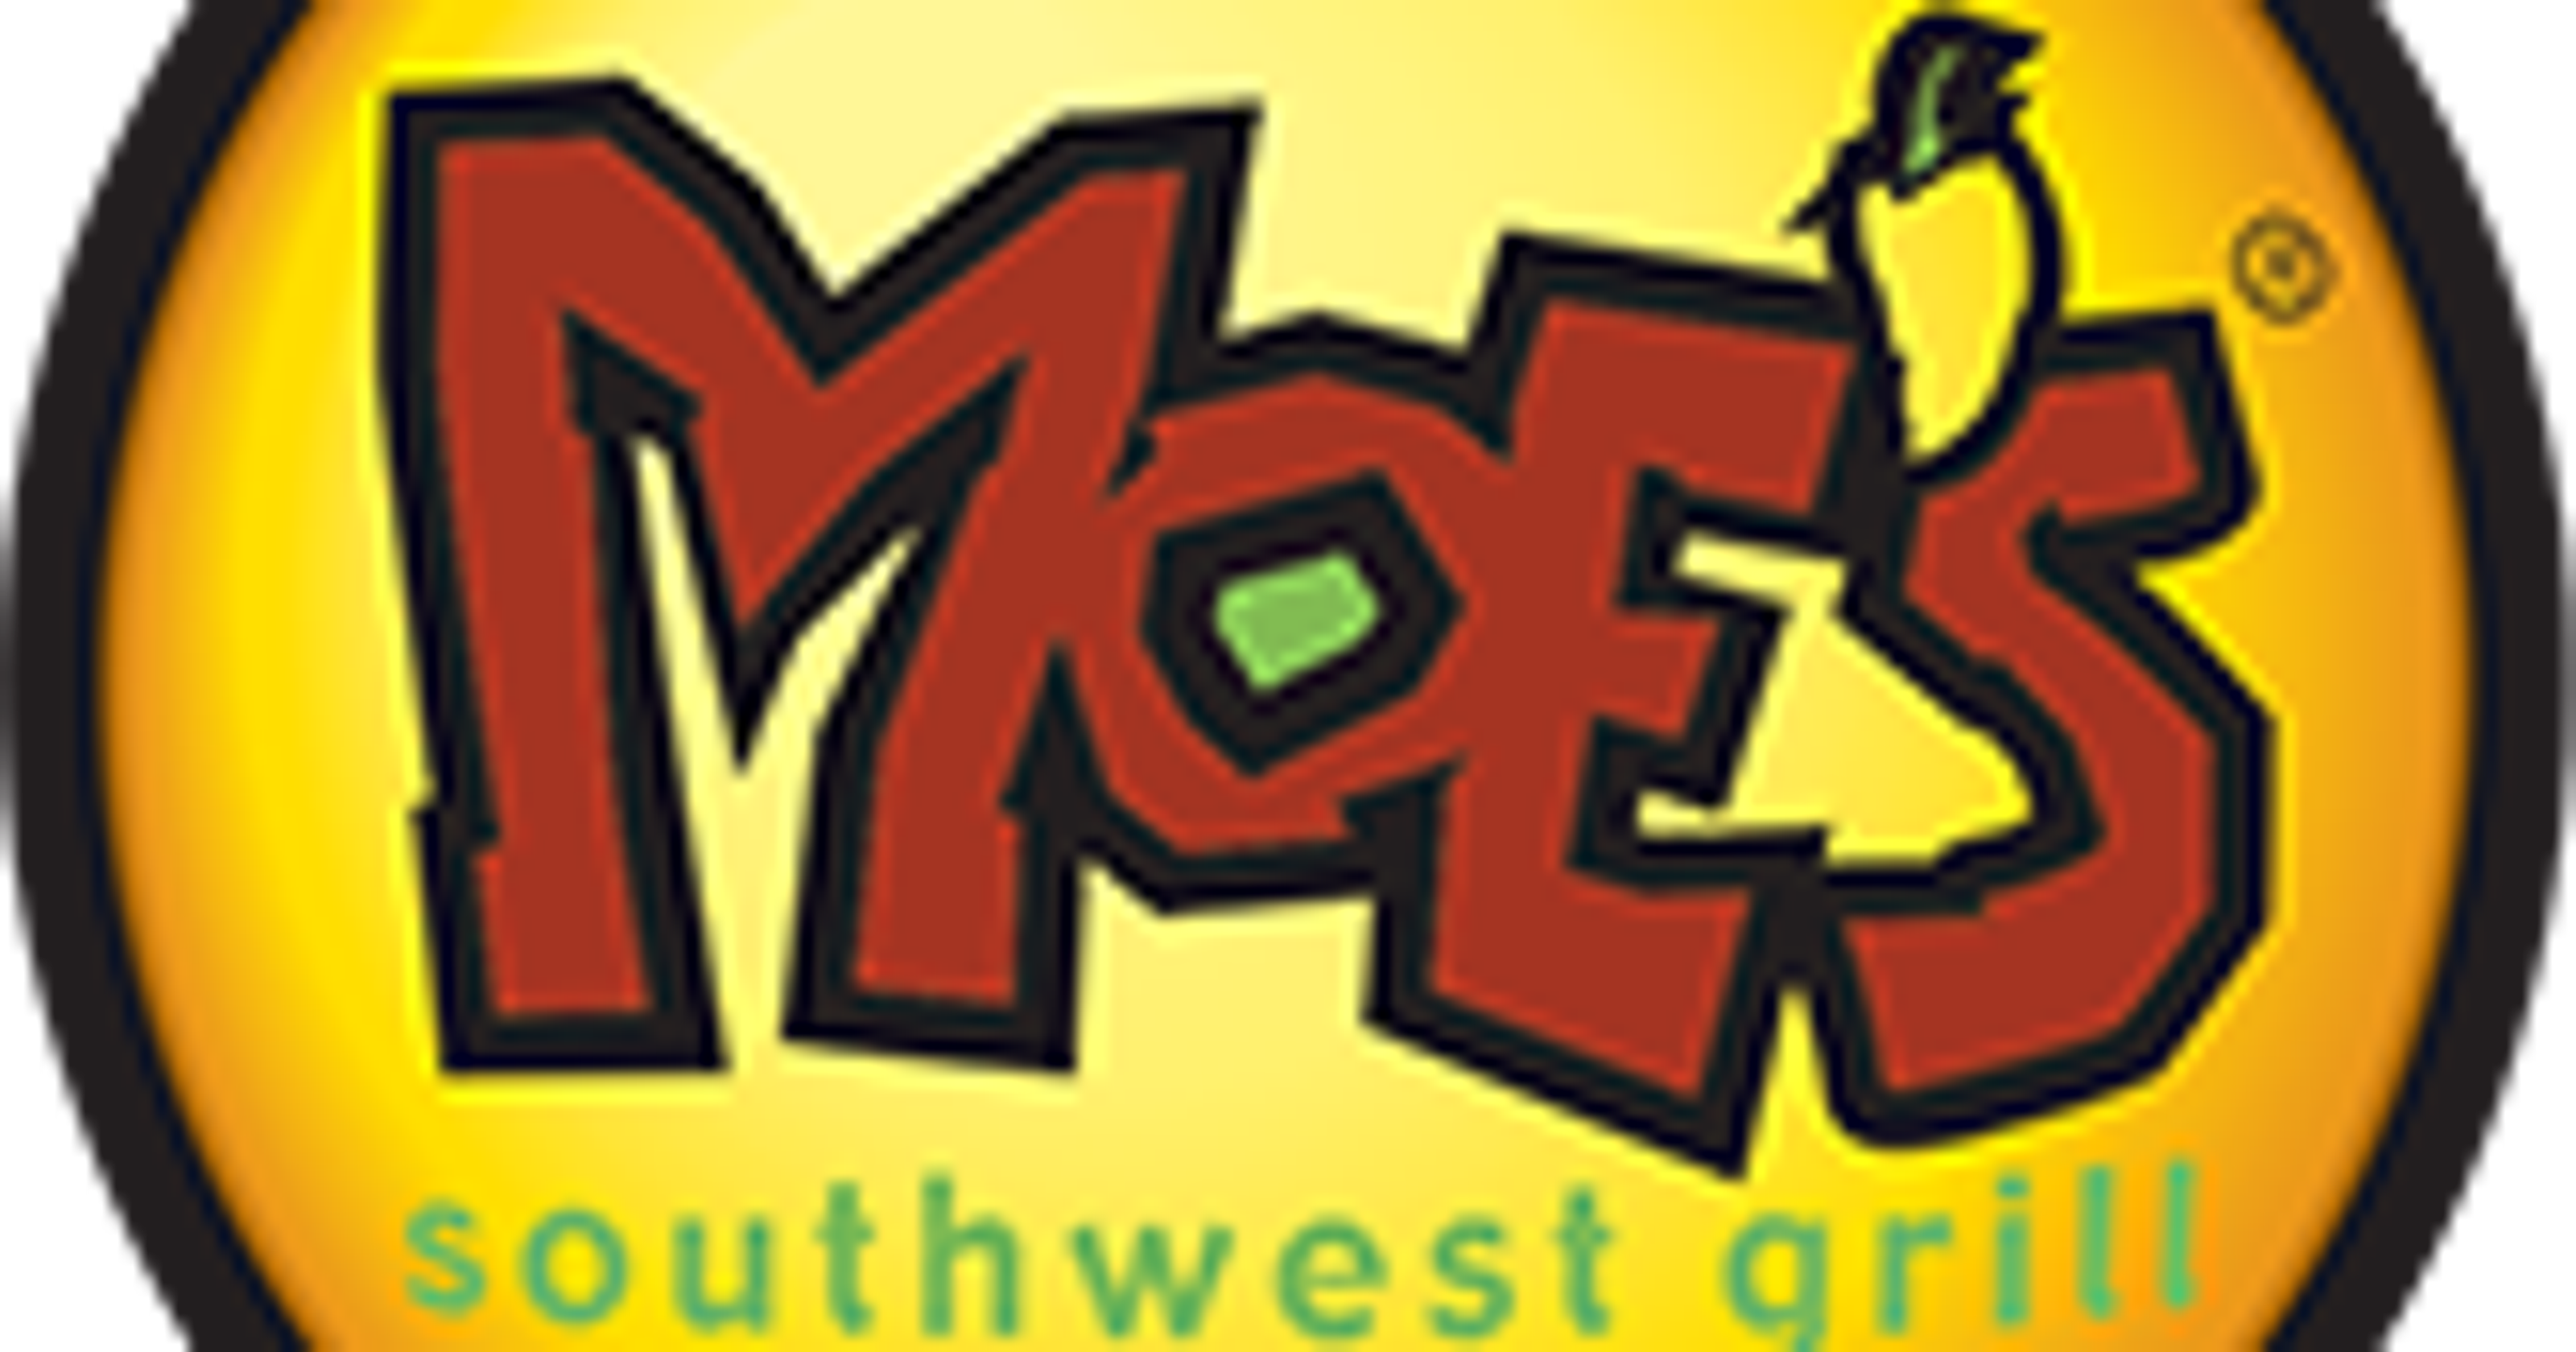 Moe's offers free queso to celebrate new Tallahassee location.